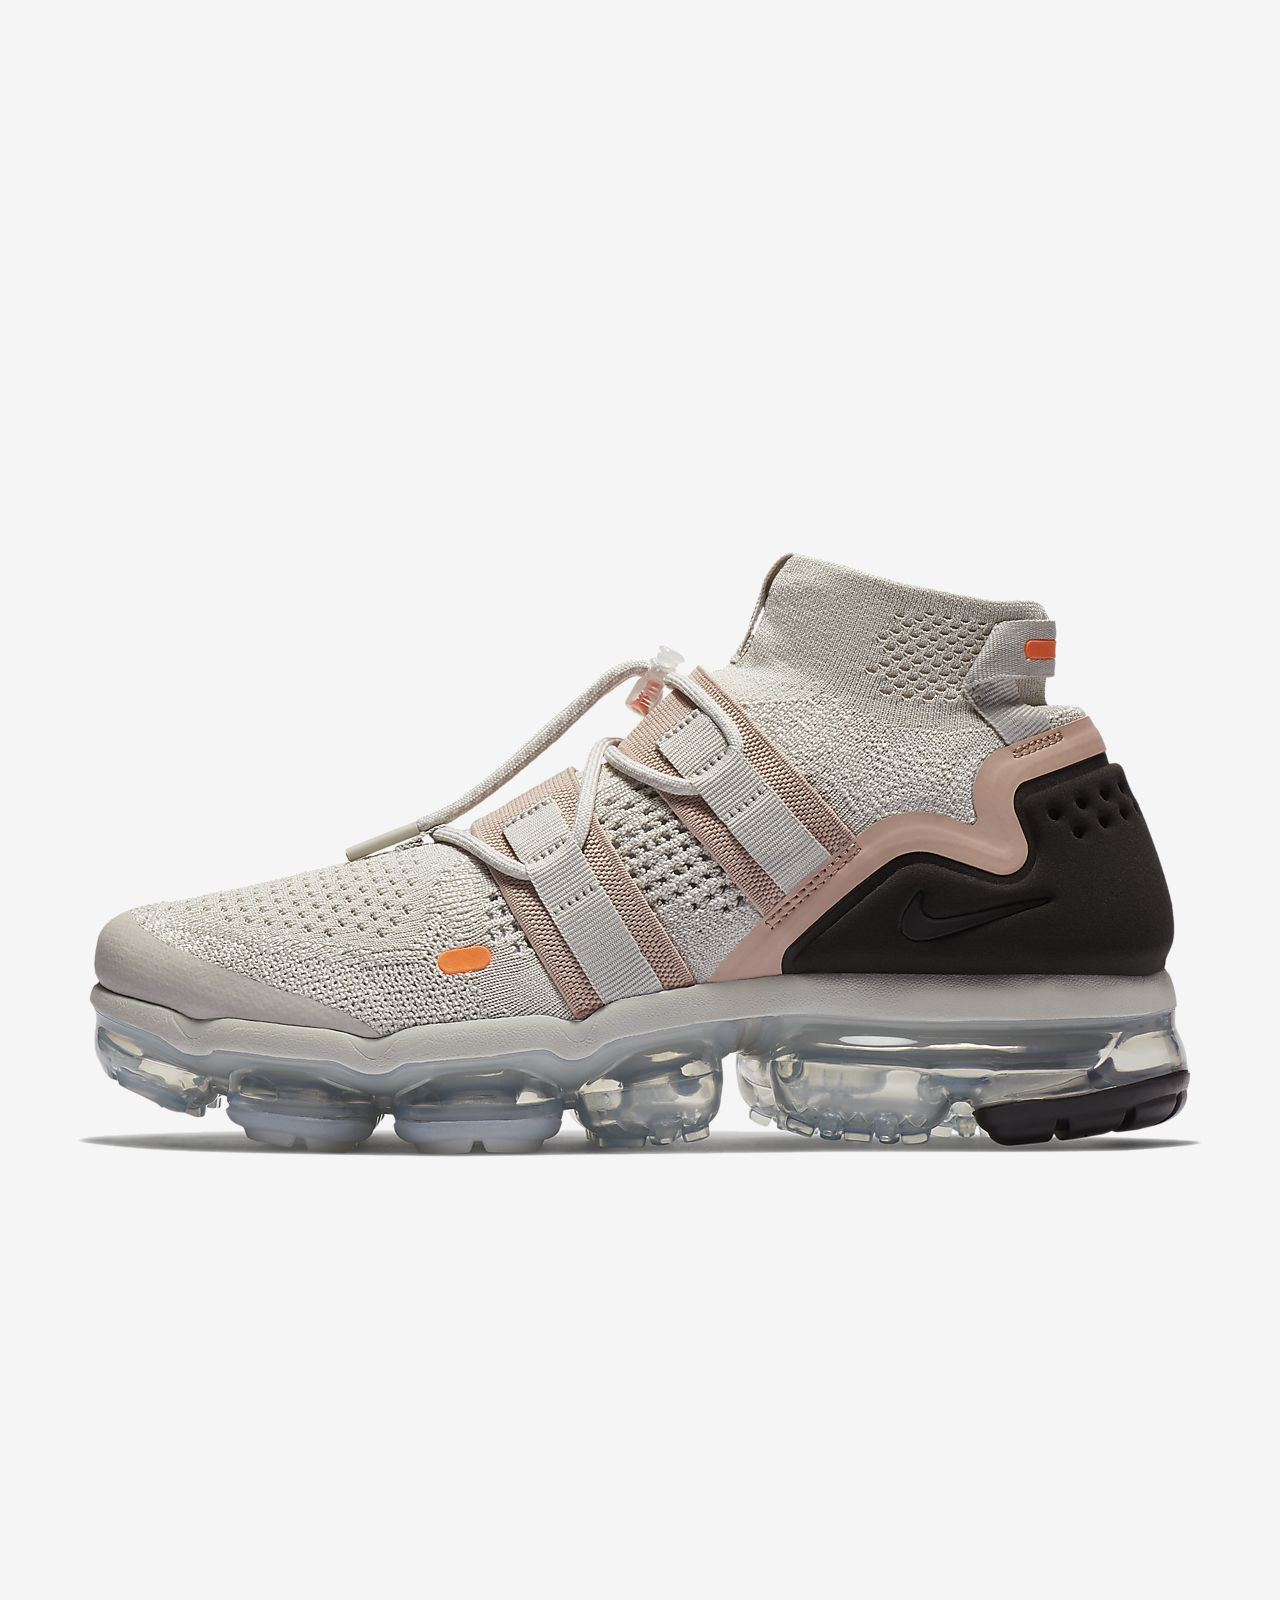 on sale 73bd5 b0596 ... Chaussure Nike Air VaporMax Flyknit Utility